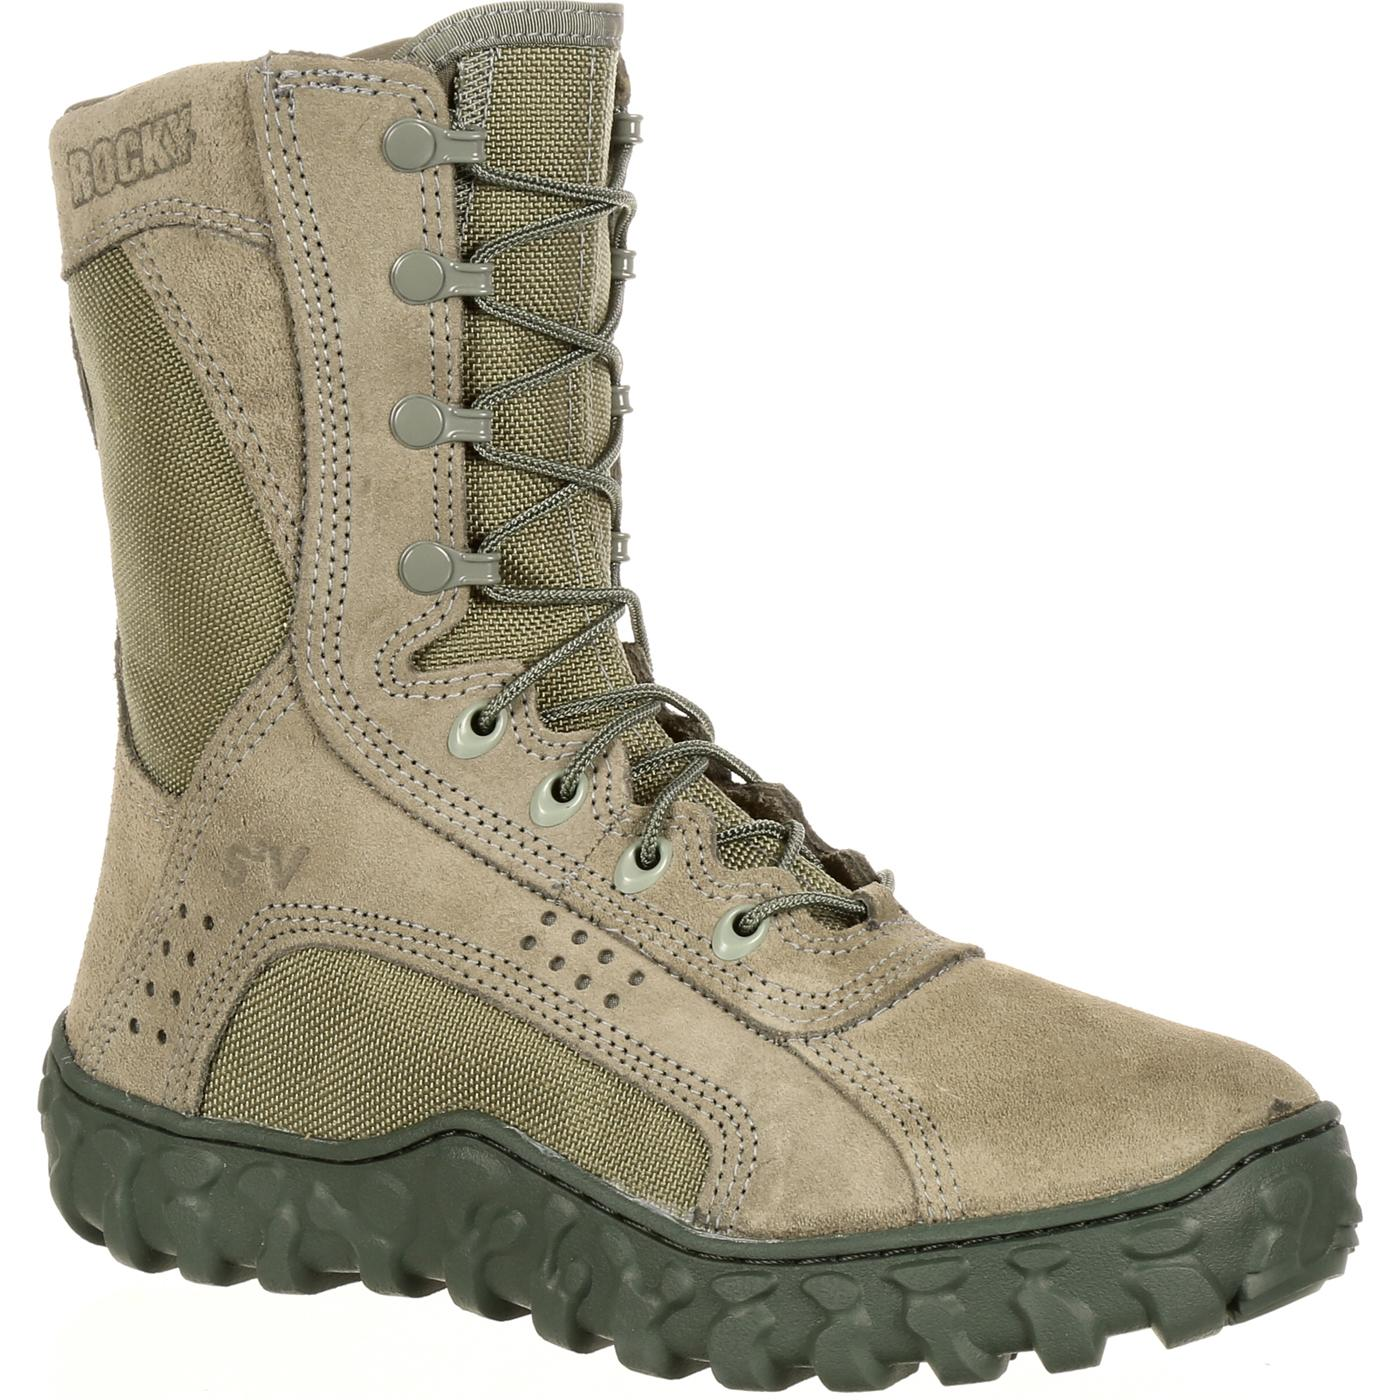 Sage Green Rocky S2v Military Boot Fq0000103